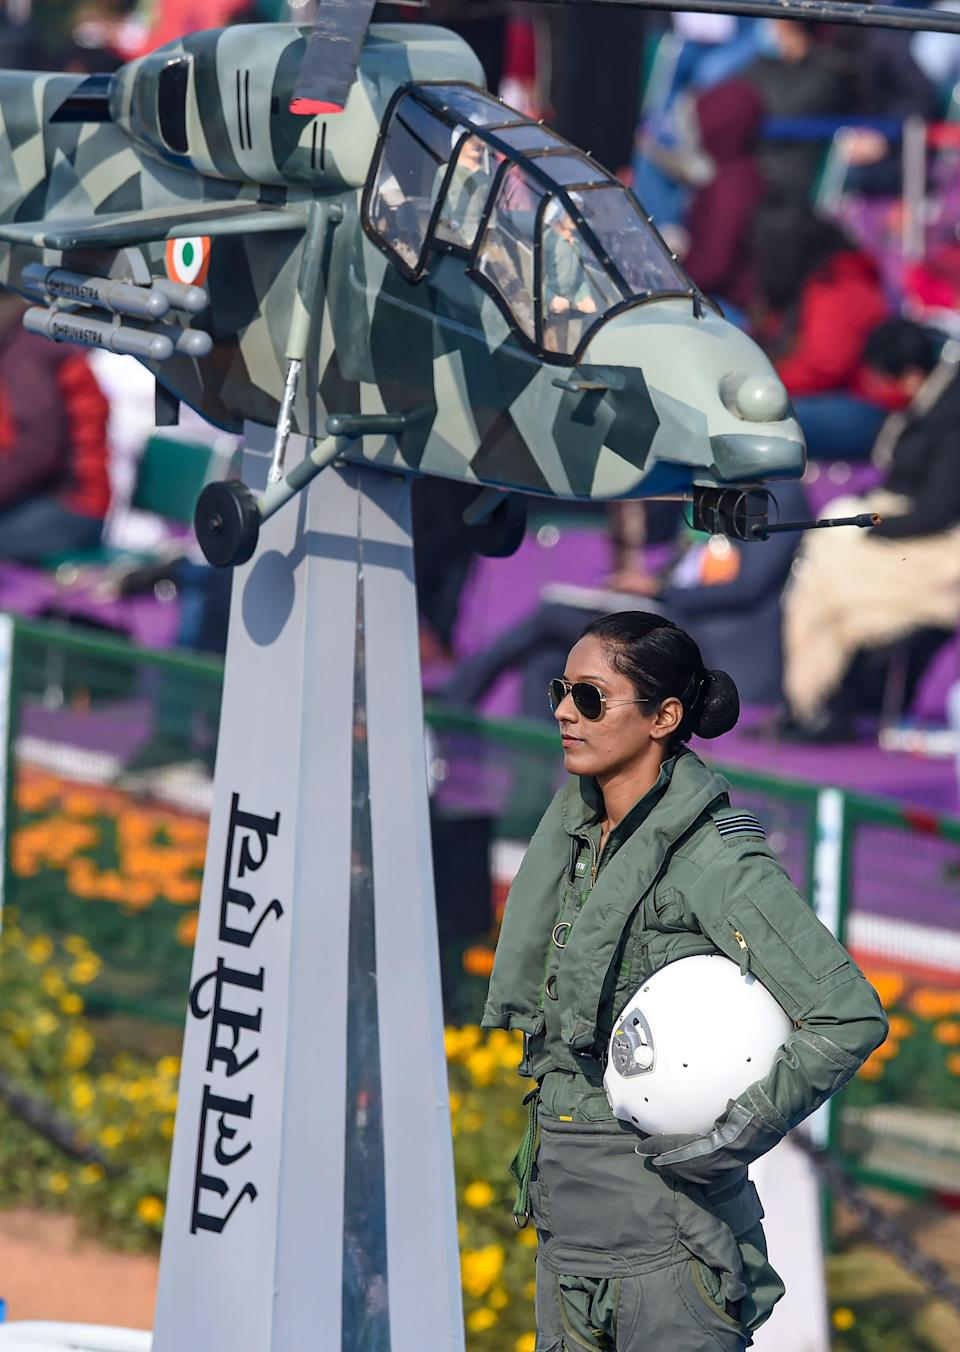 New Delhi: Flight lieutenant Bhawana Kanth stands on the Indian Air Force (IAF) tableau as it moves past Rajpath, during the 72nd Republic Day celebrations in New Delhi, Tuesday, Jan 26, 2021. Kanth became the first woman fighter pilot to take part in the January 26 ceremonial event.